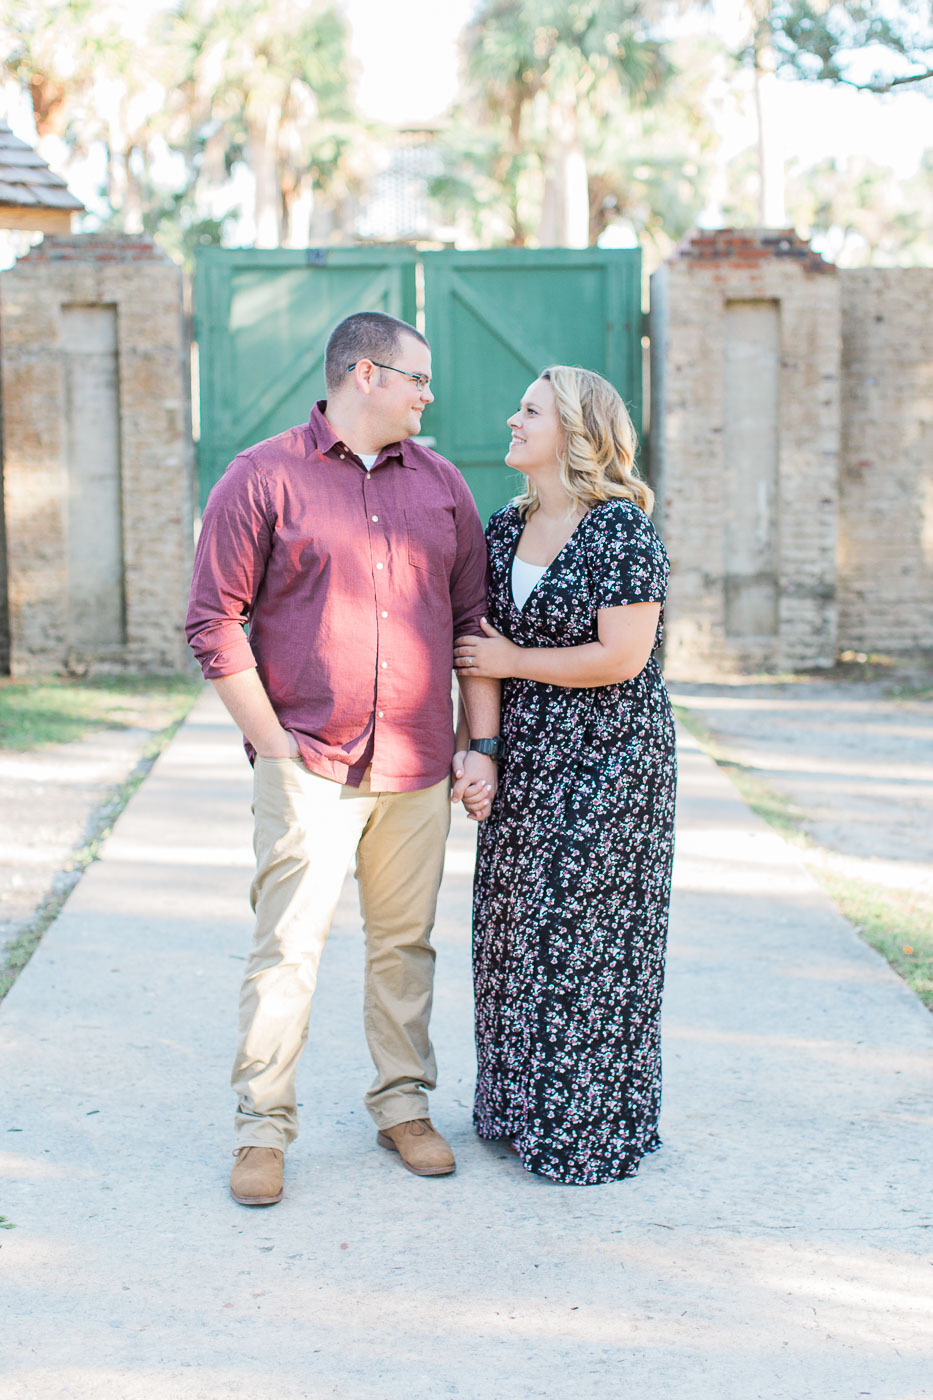 Andrew and Jaymee in front of the doors of Atalaya castle at Huntington beach state park engagement session